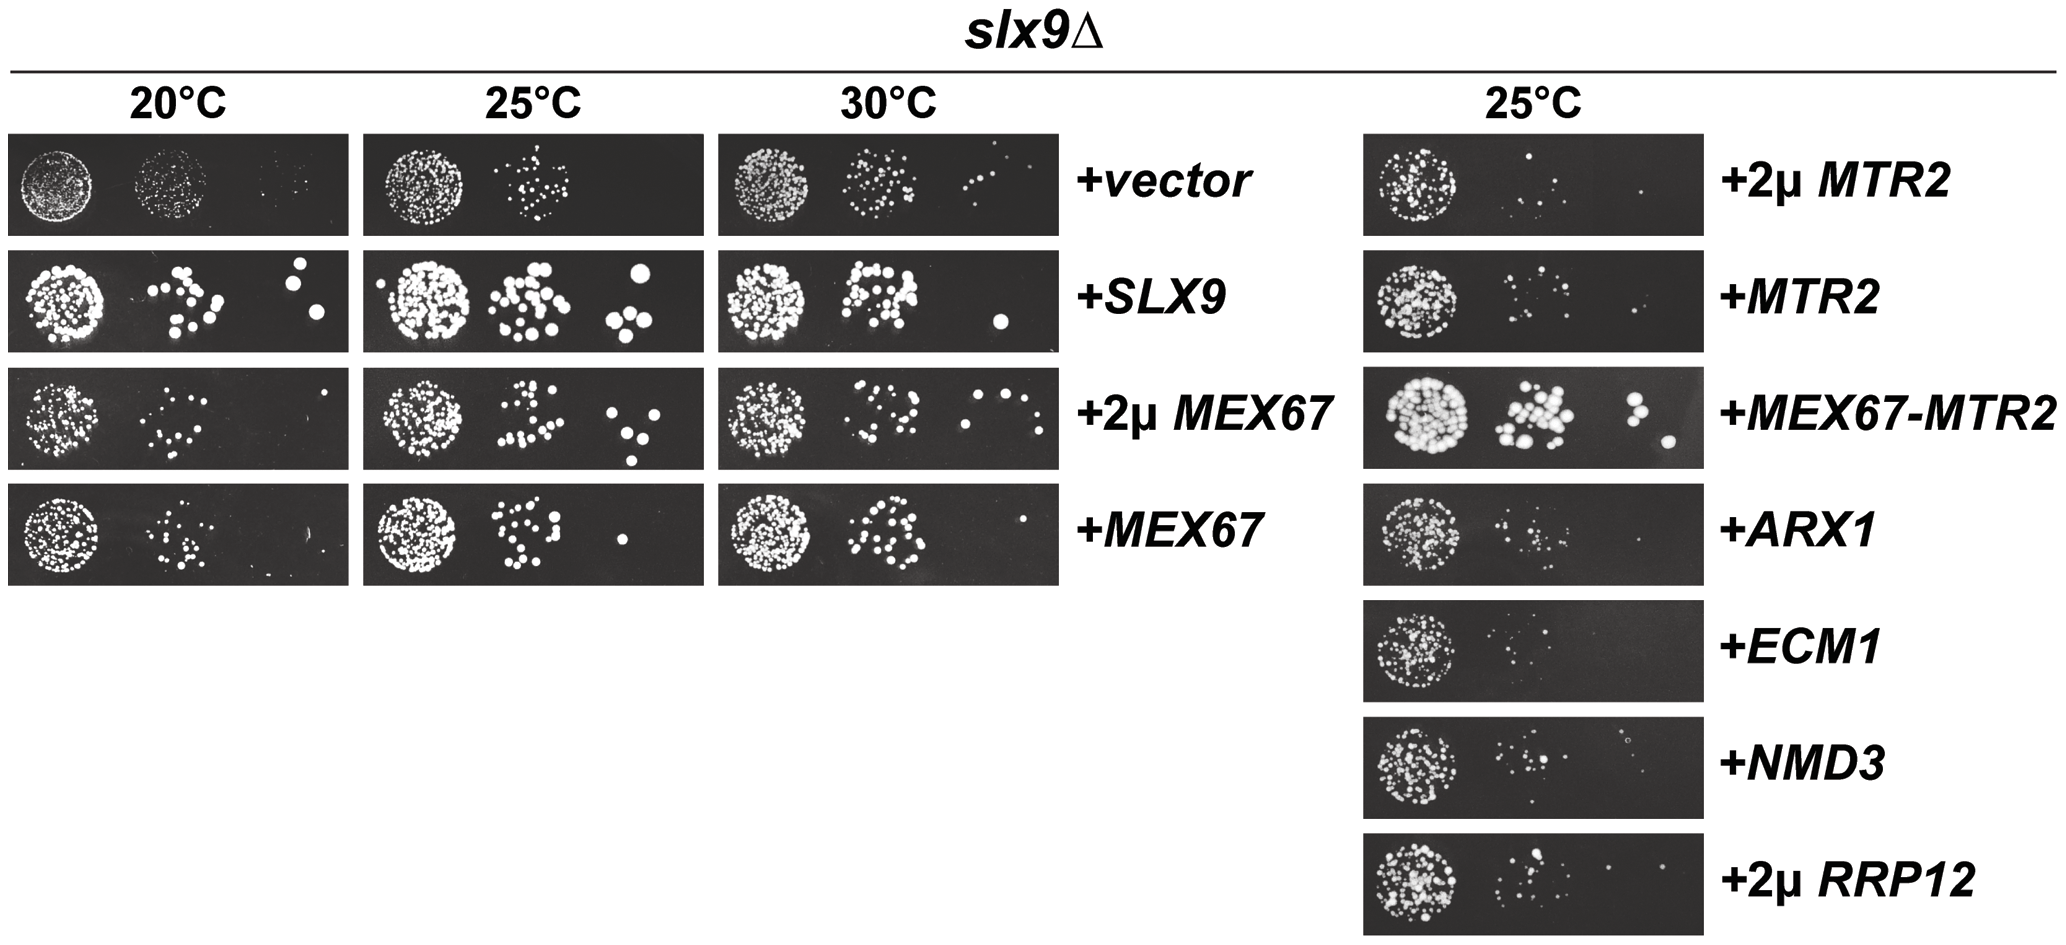 Over-expression of Mex67-Mtr2 rescues impaired growth of the <i>slx9</i>Δ mutant.